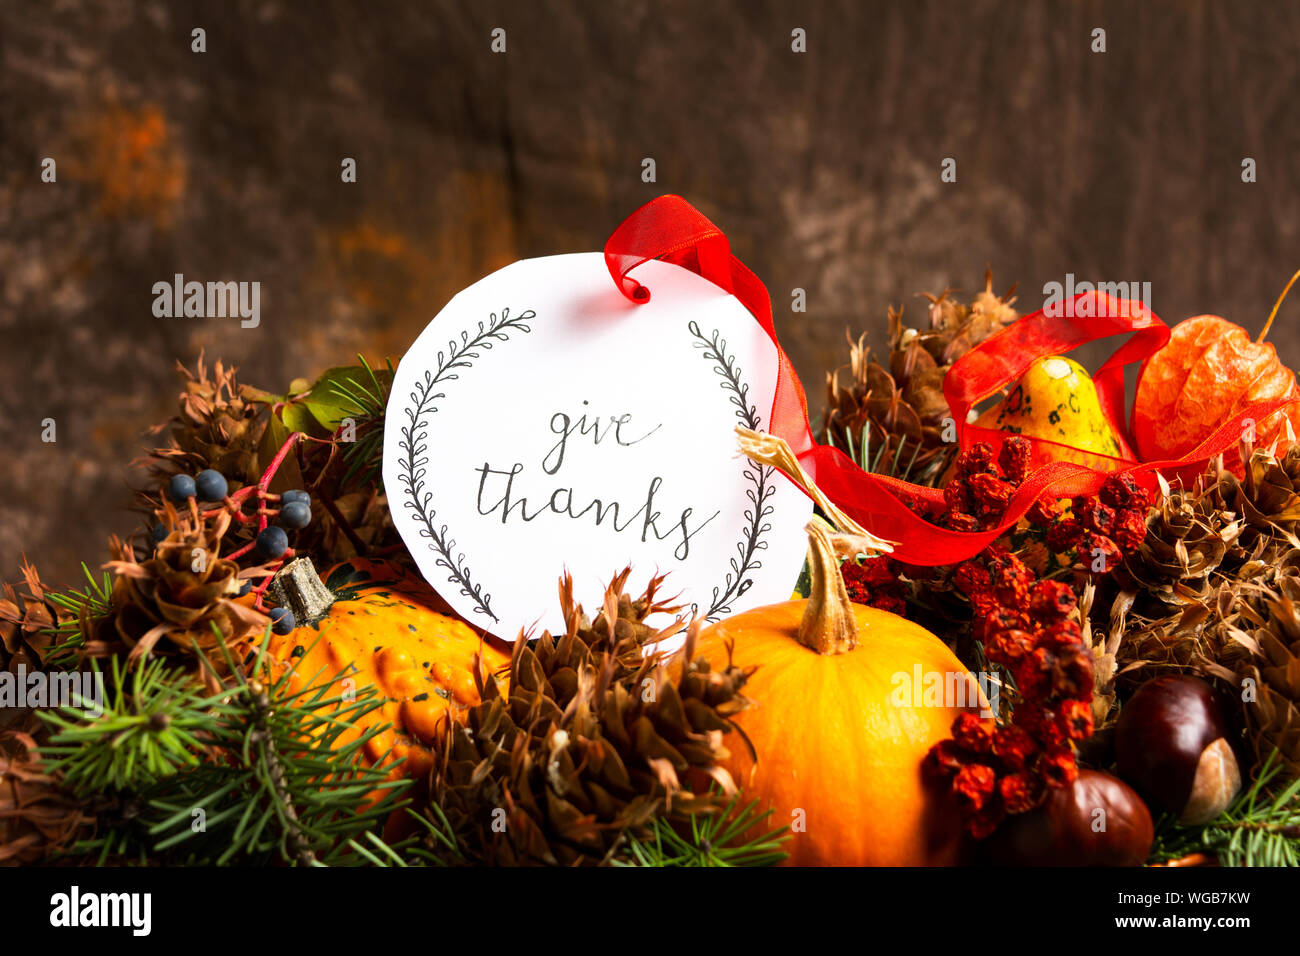 Thanksgiving Day Card With Festive Autumn Decorations Stock